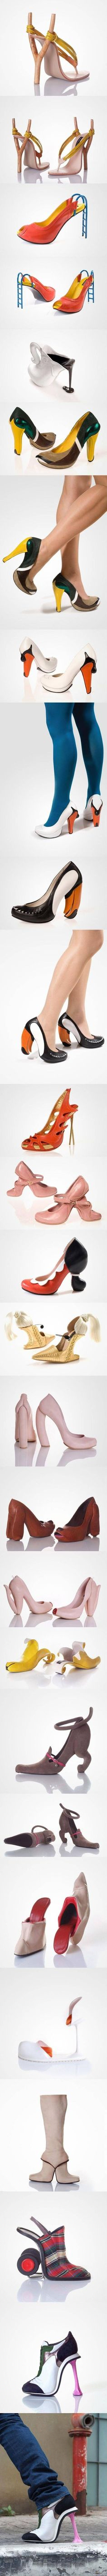 If you have enough money to buy these ugly shoes, please give me that money instead. It will go to better use.